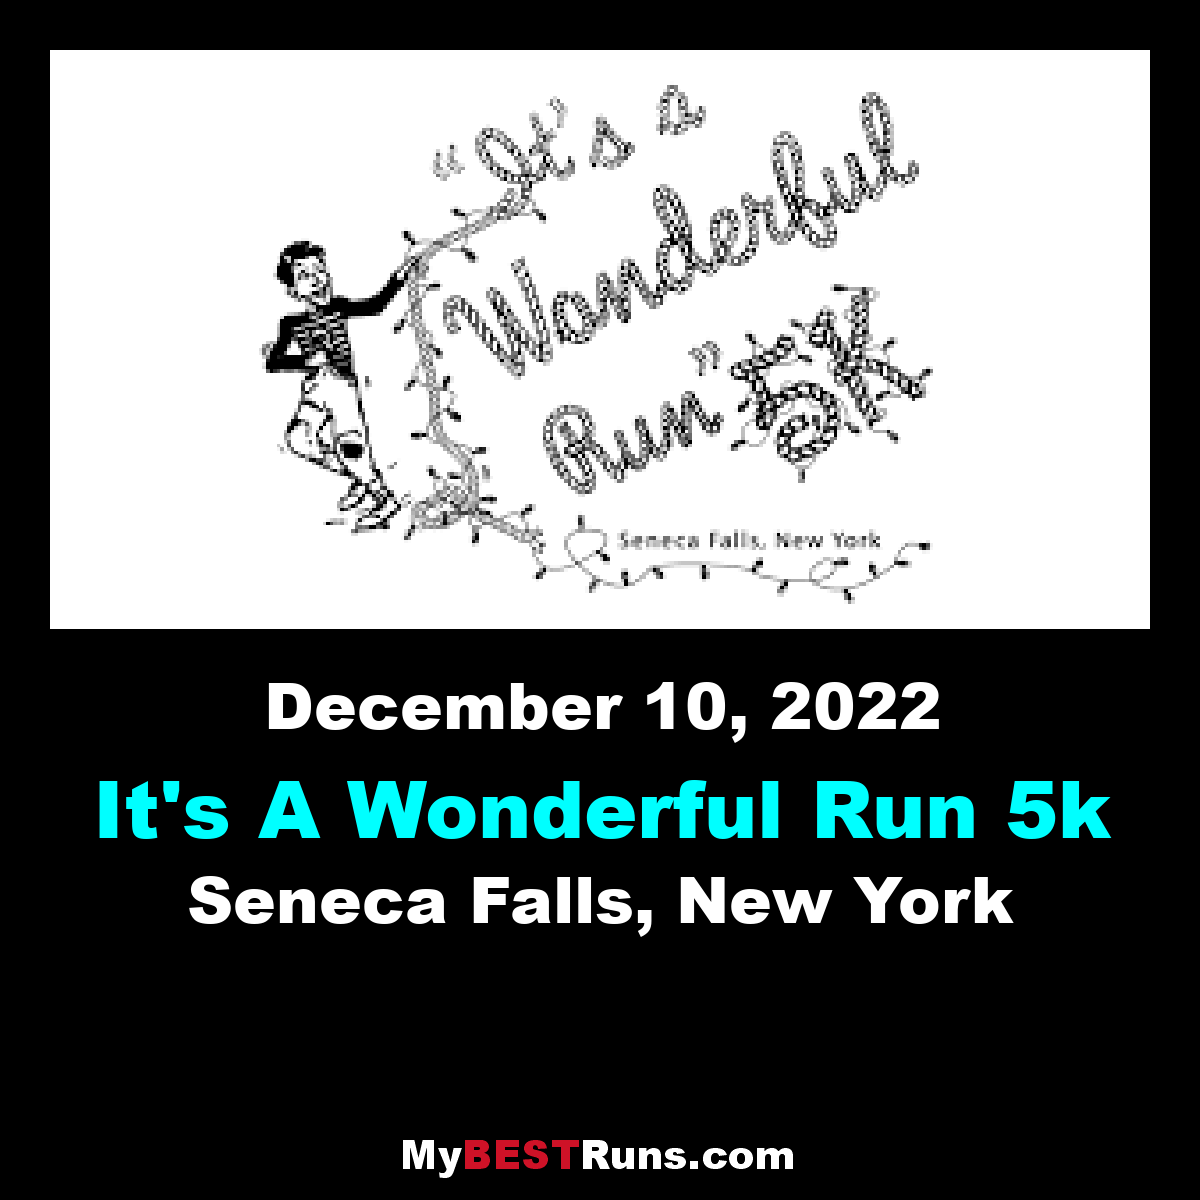 It's A Wonderful Run 5k